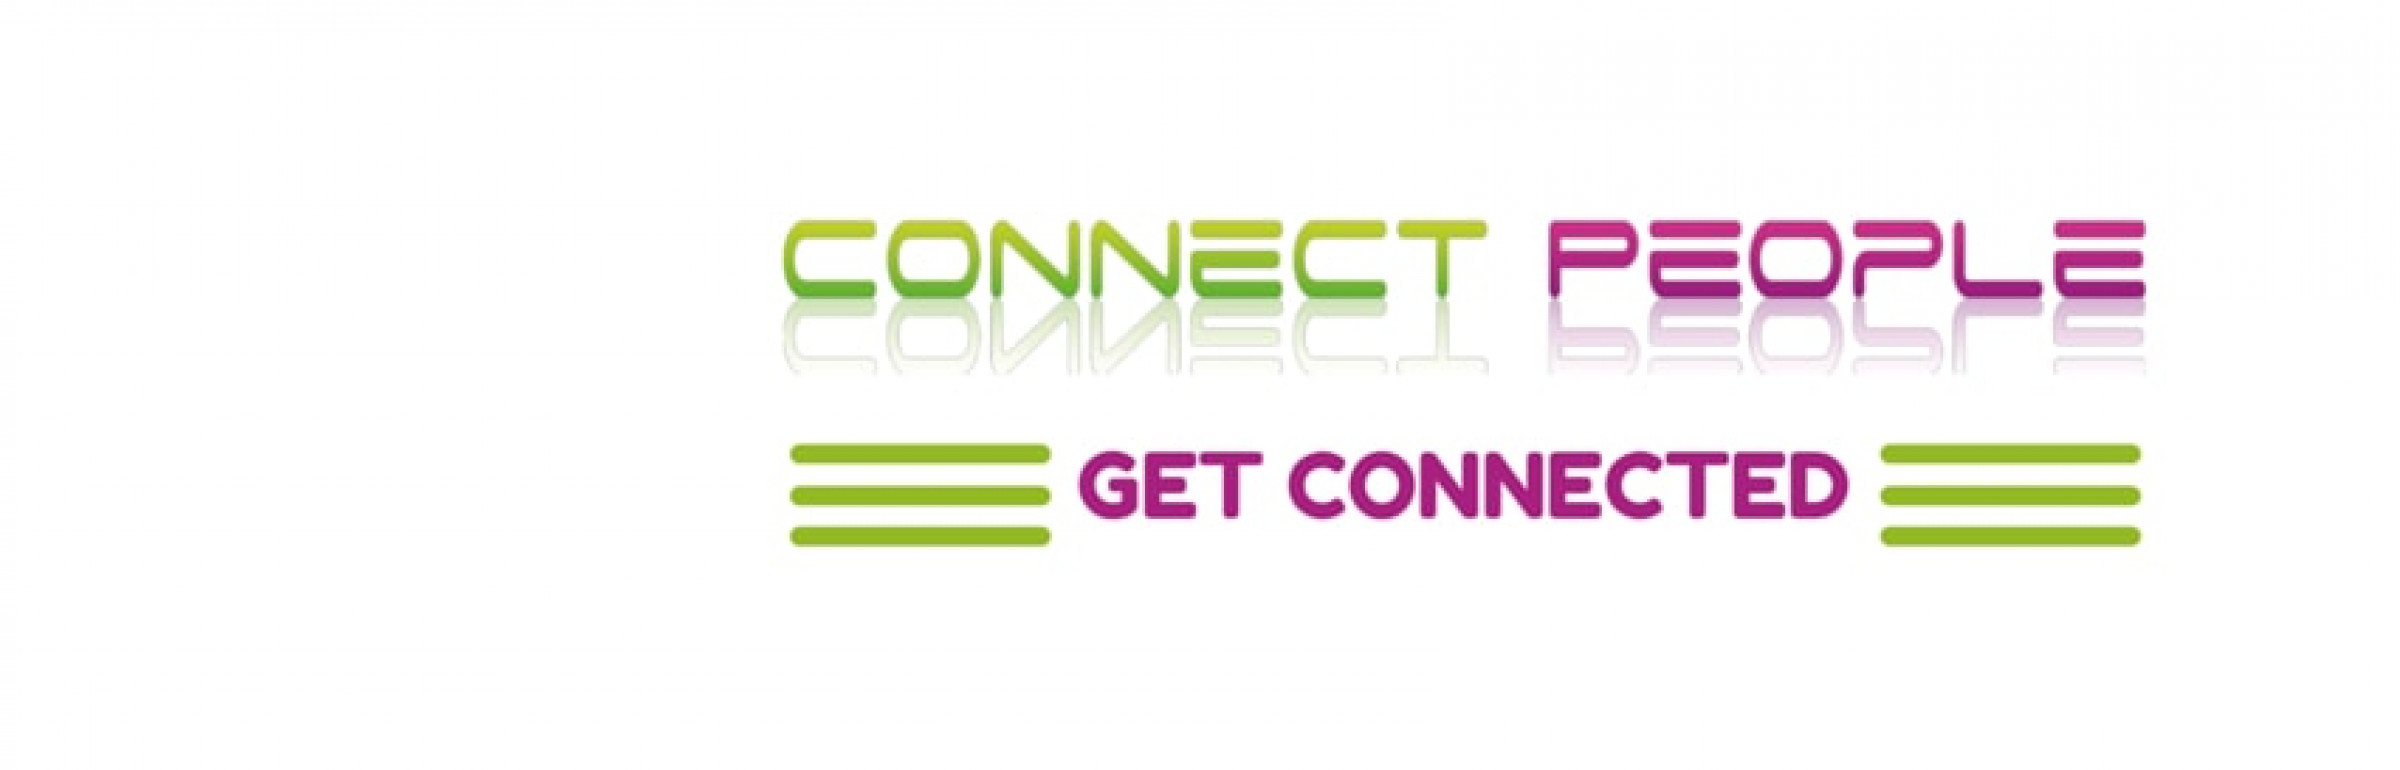 Banner Connect People